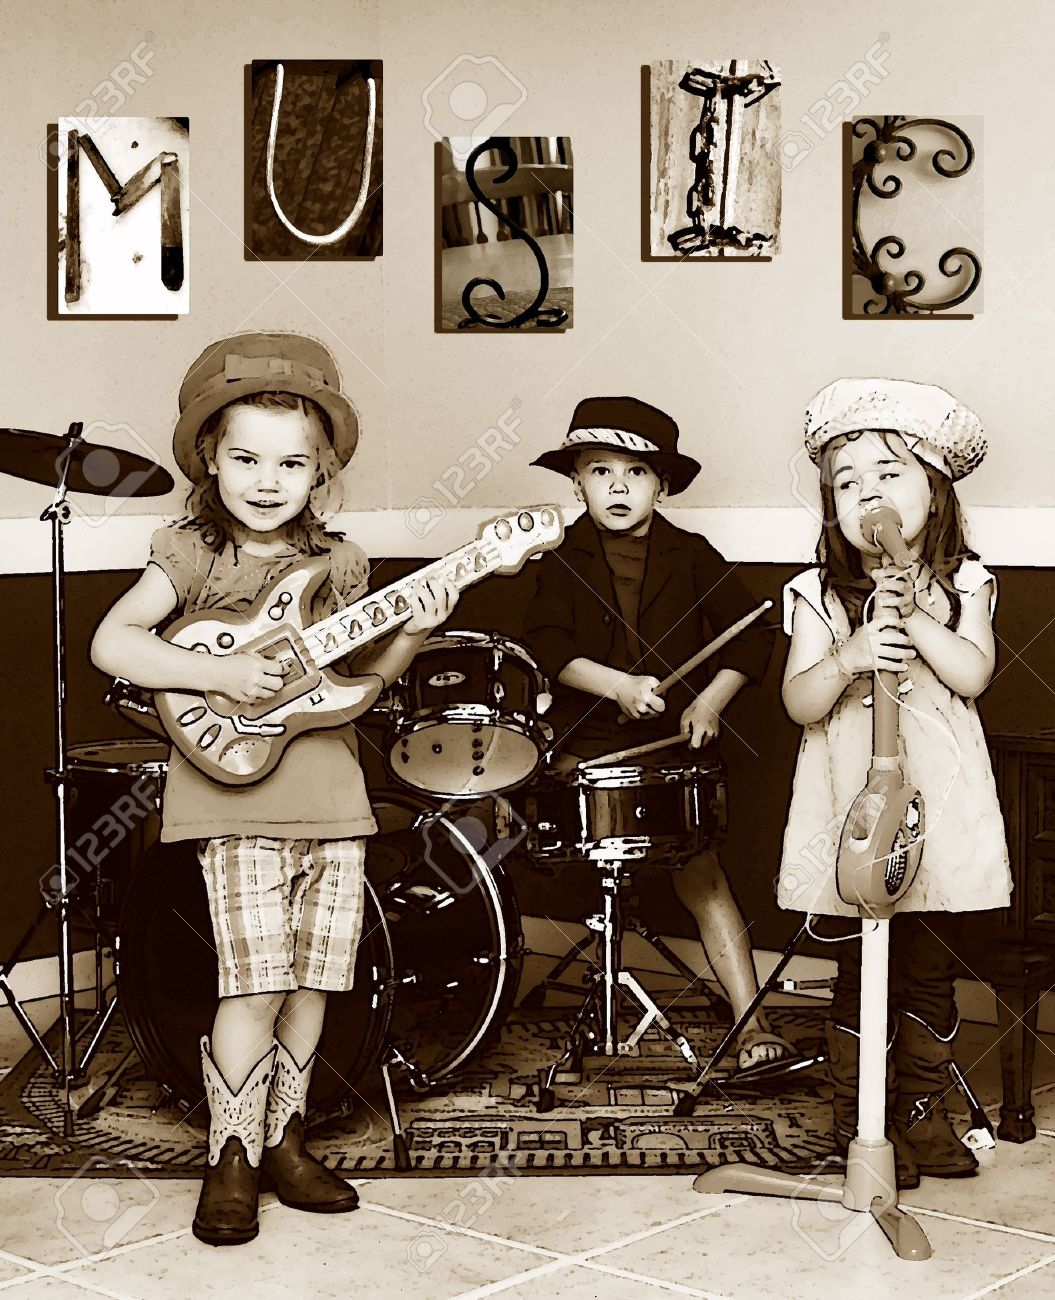 Three siblings pretend to be a music band. They are playing instruments and one is singing. The letters M, U, S, I, C is posted on the wall. Youngest member is singing. - 14838860